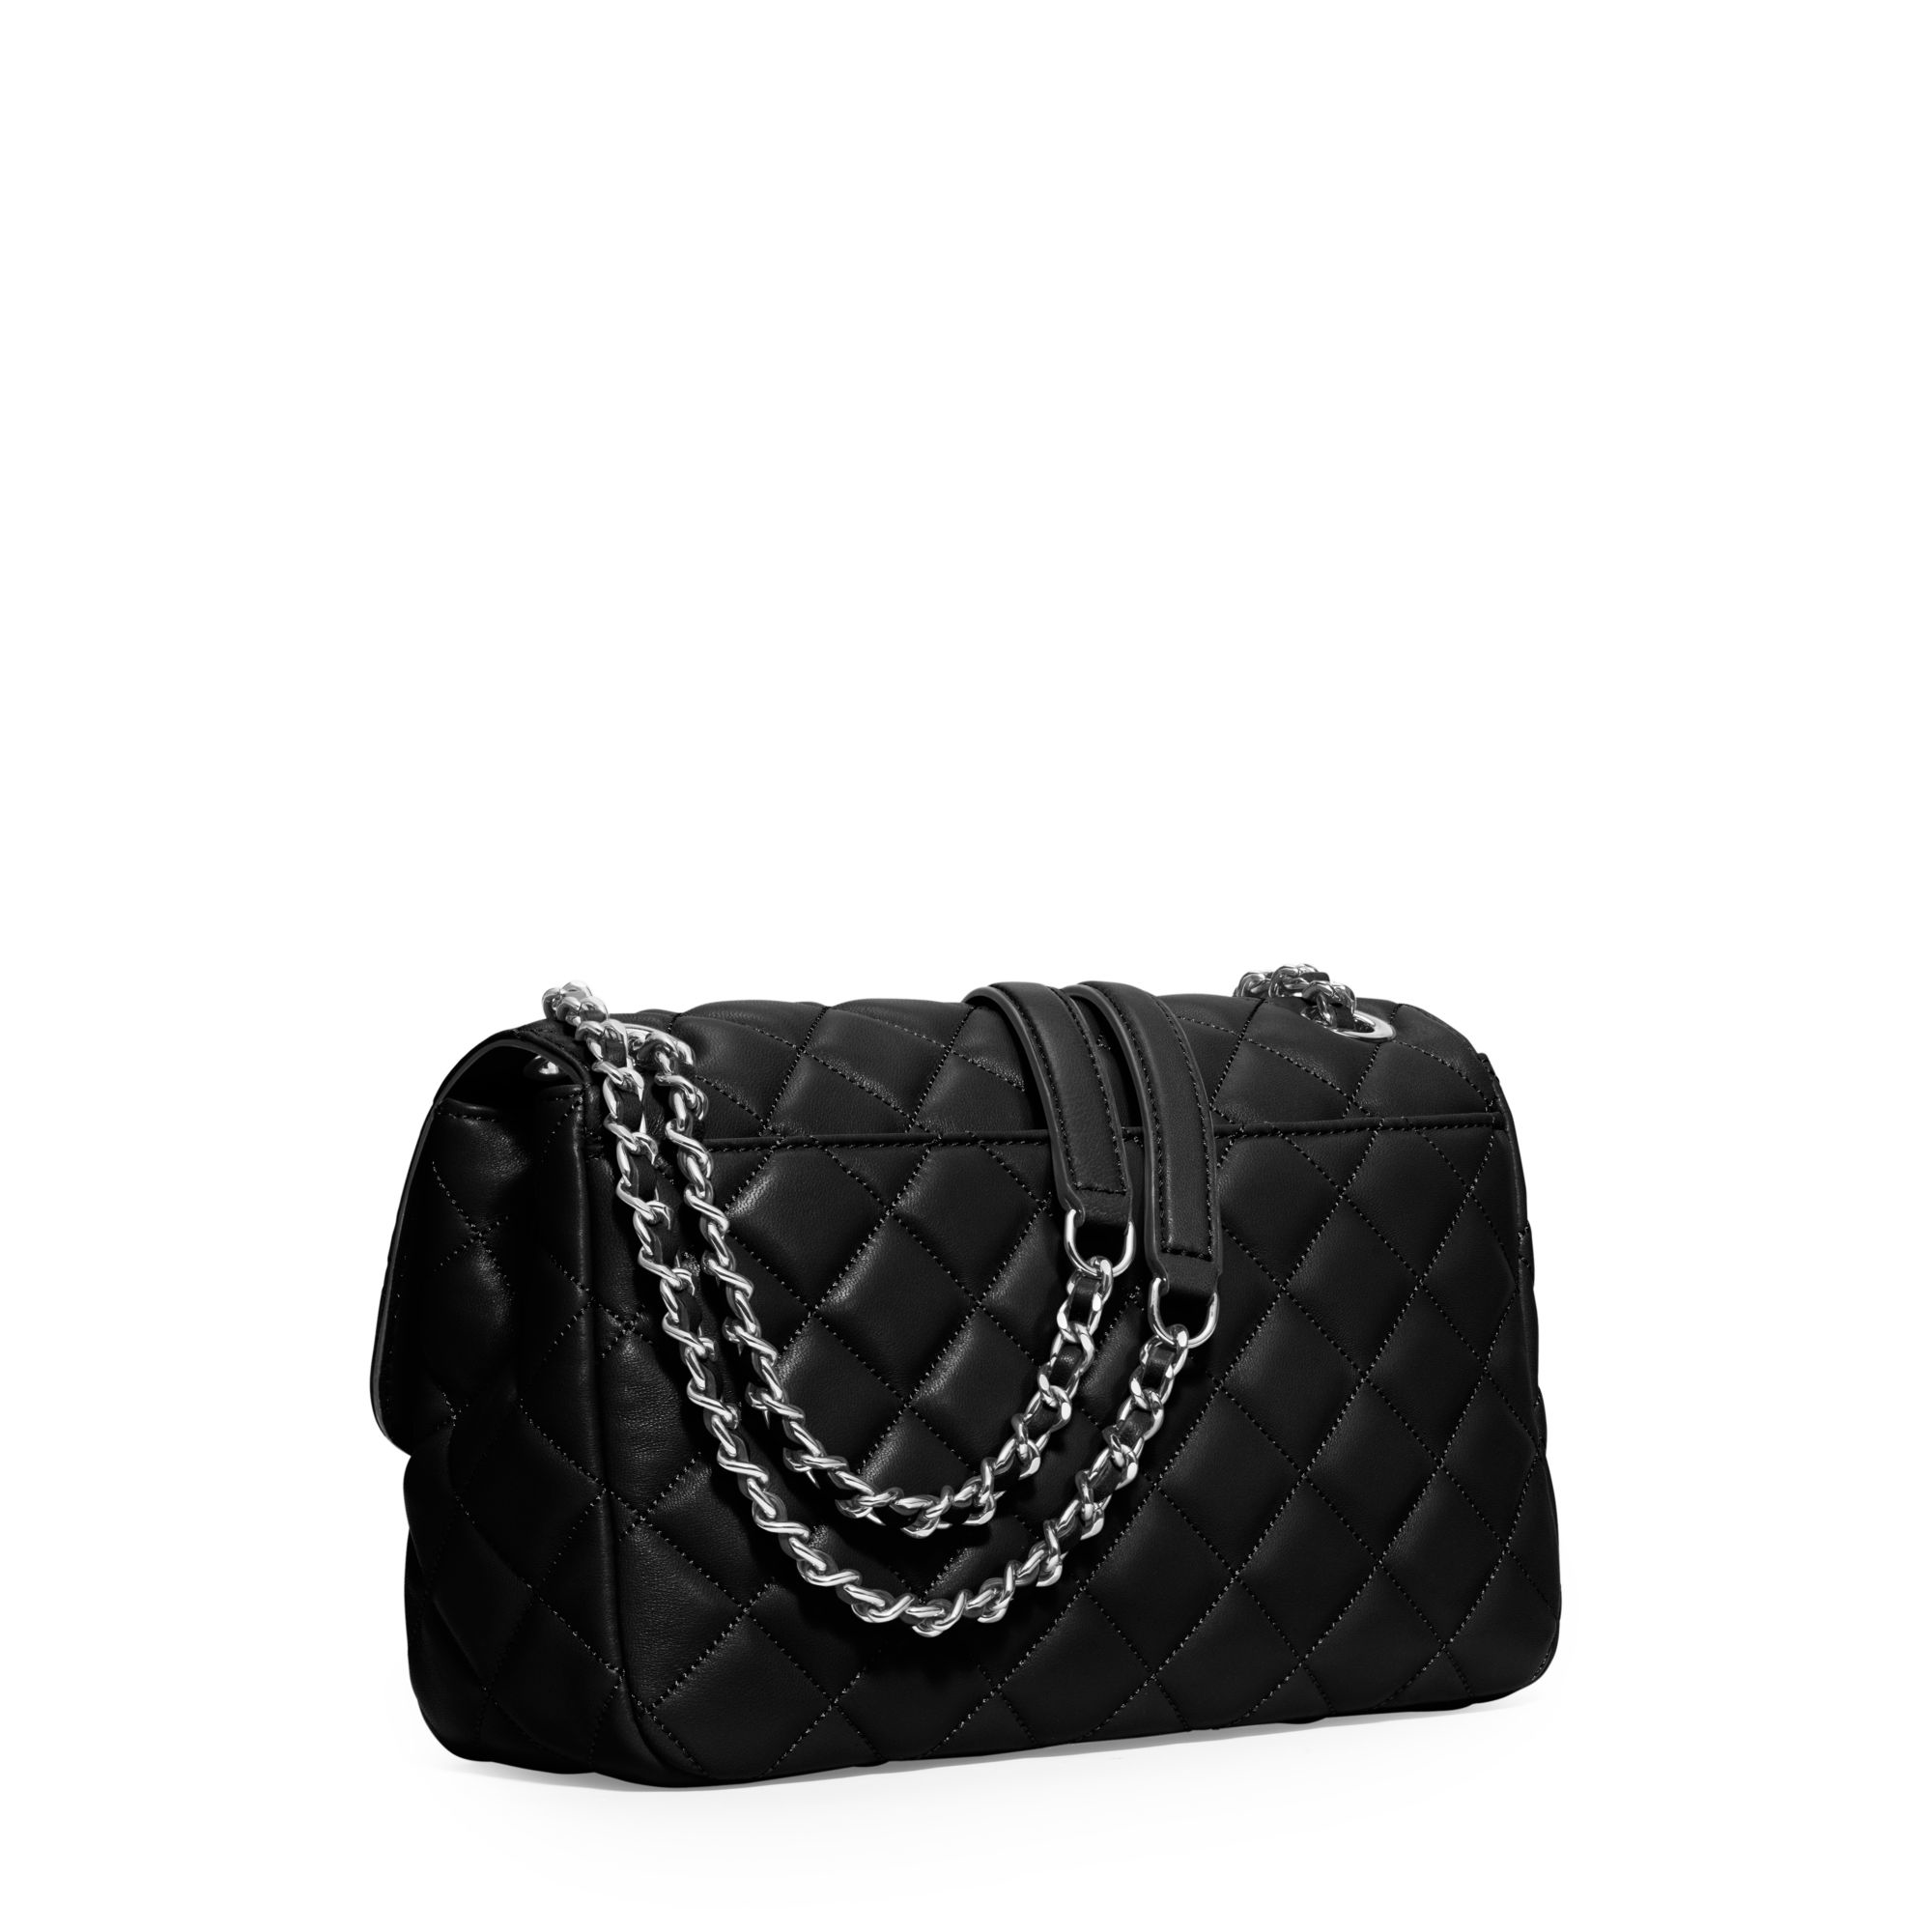 Michael kors Sloan Large Quilted-Leather Shoulder Bag in Black | Lyst